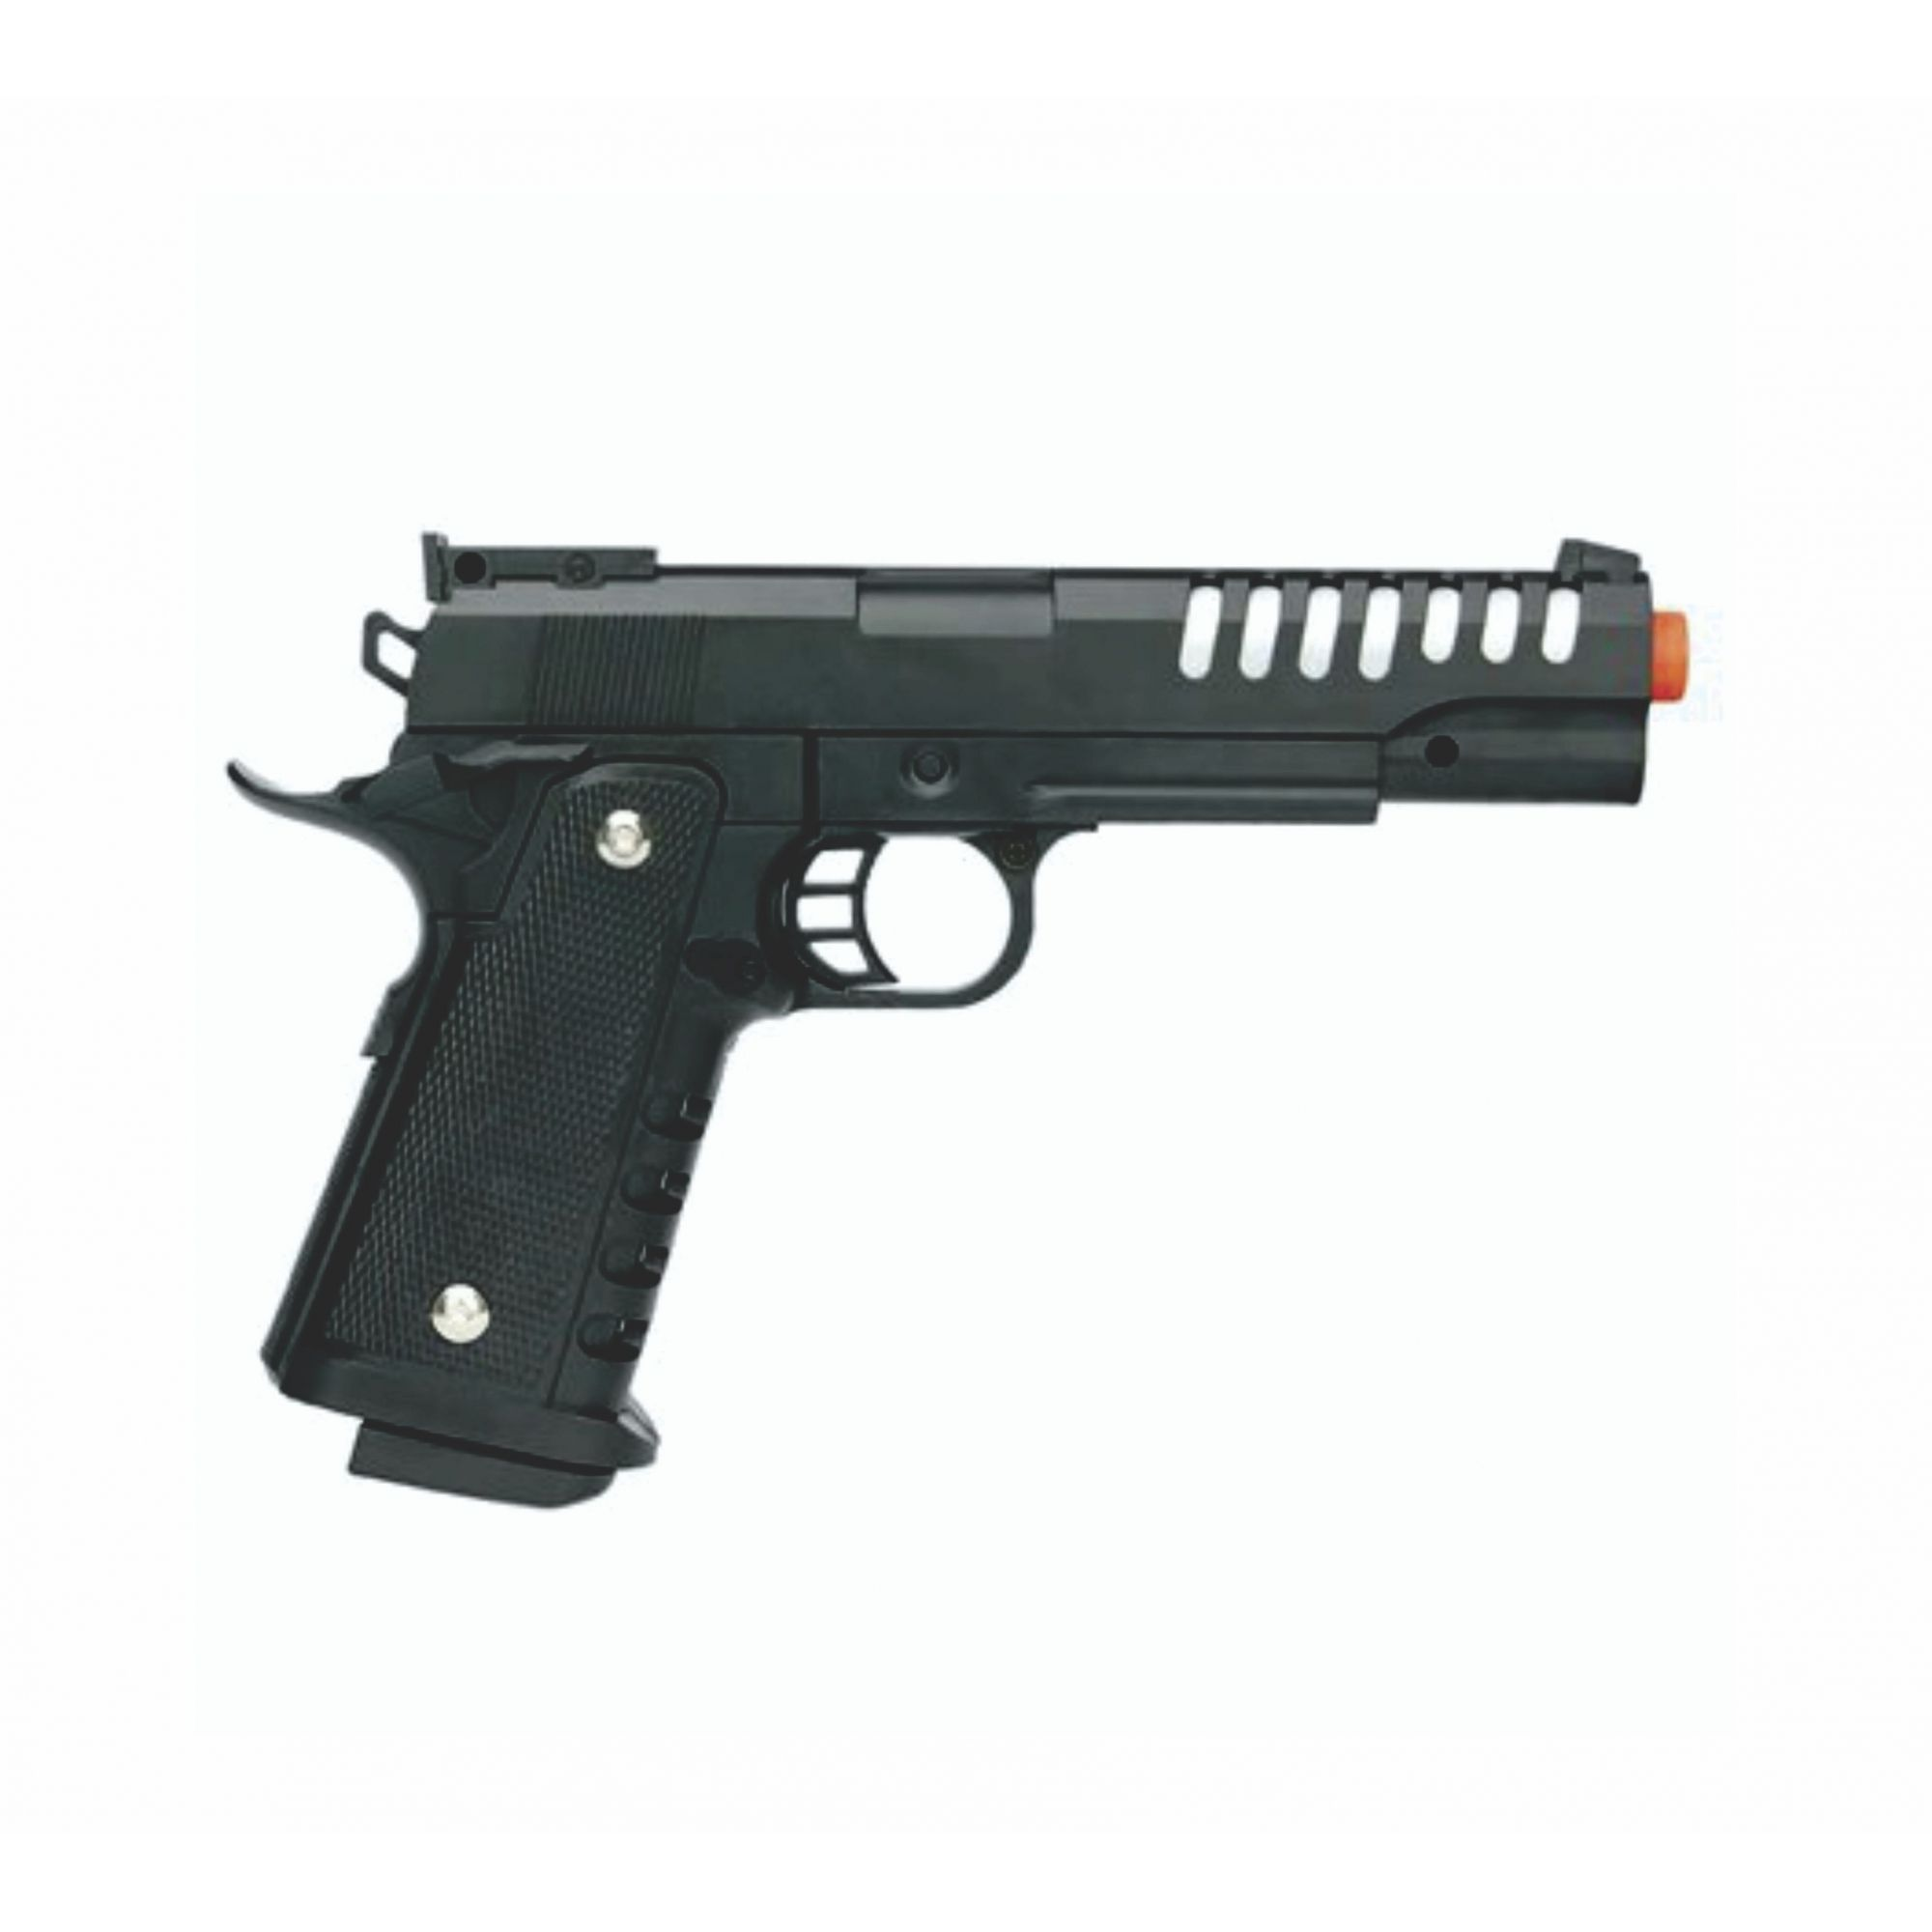 PISTOLA AIRSOFT ROSSI VG 1911- V301 6MM